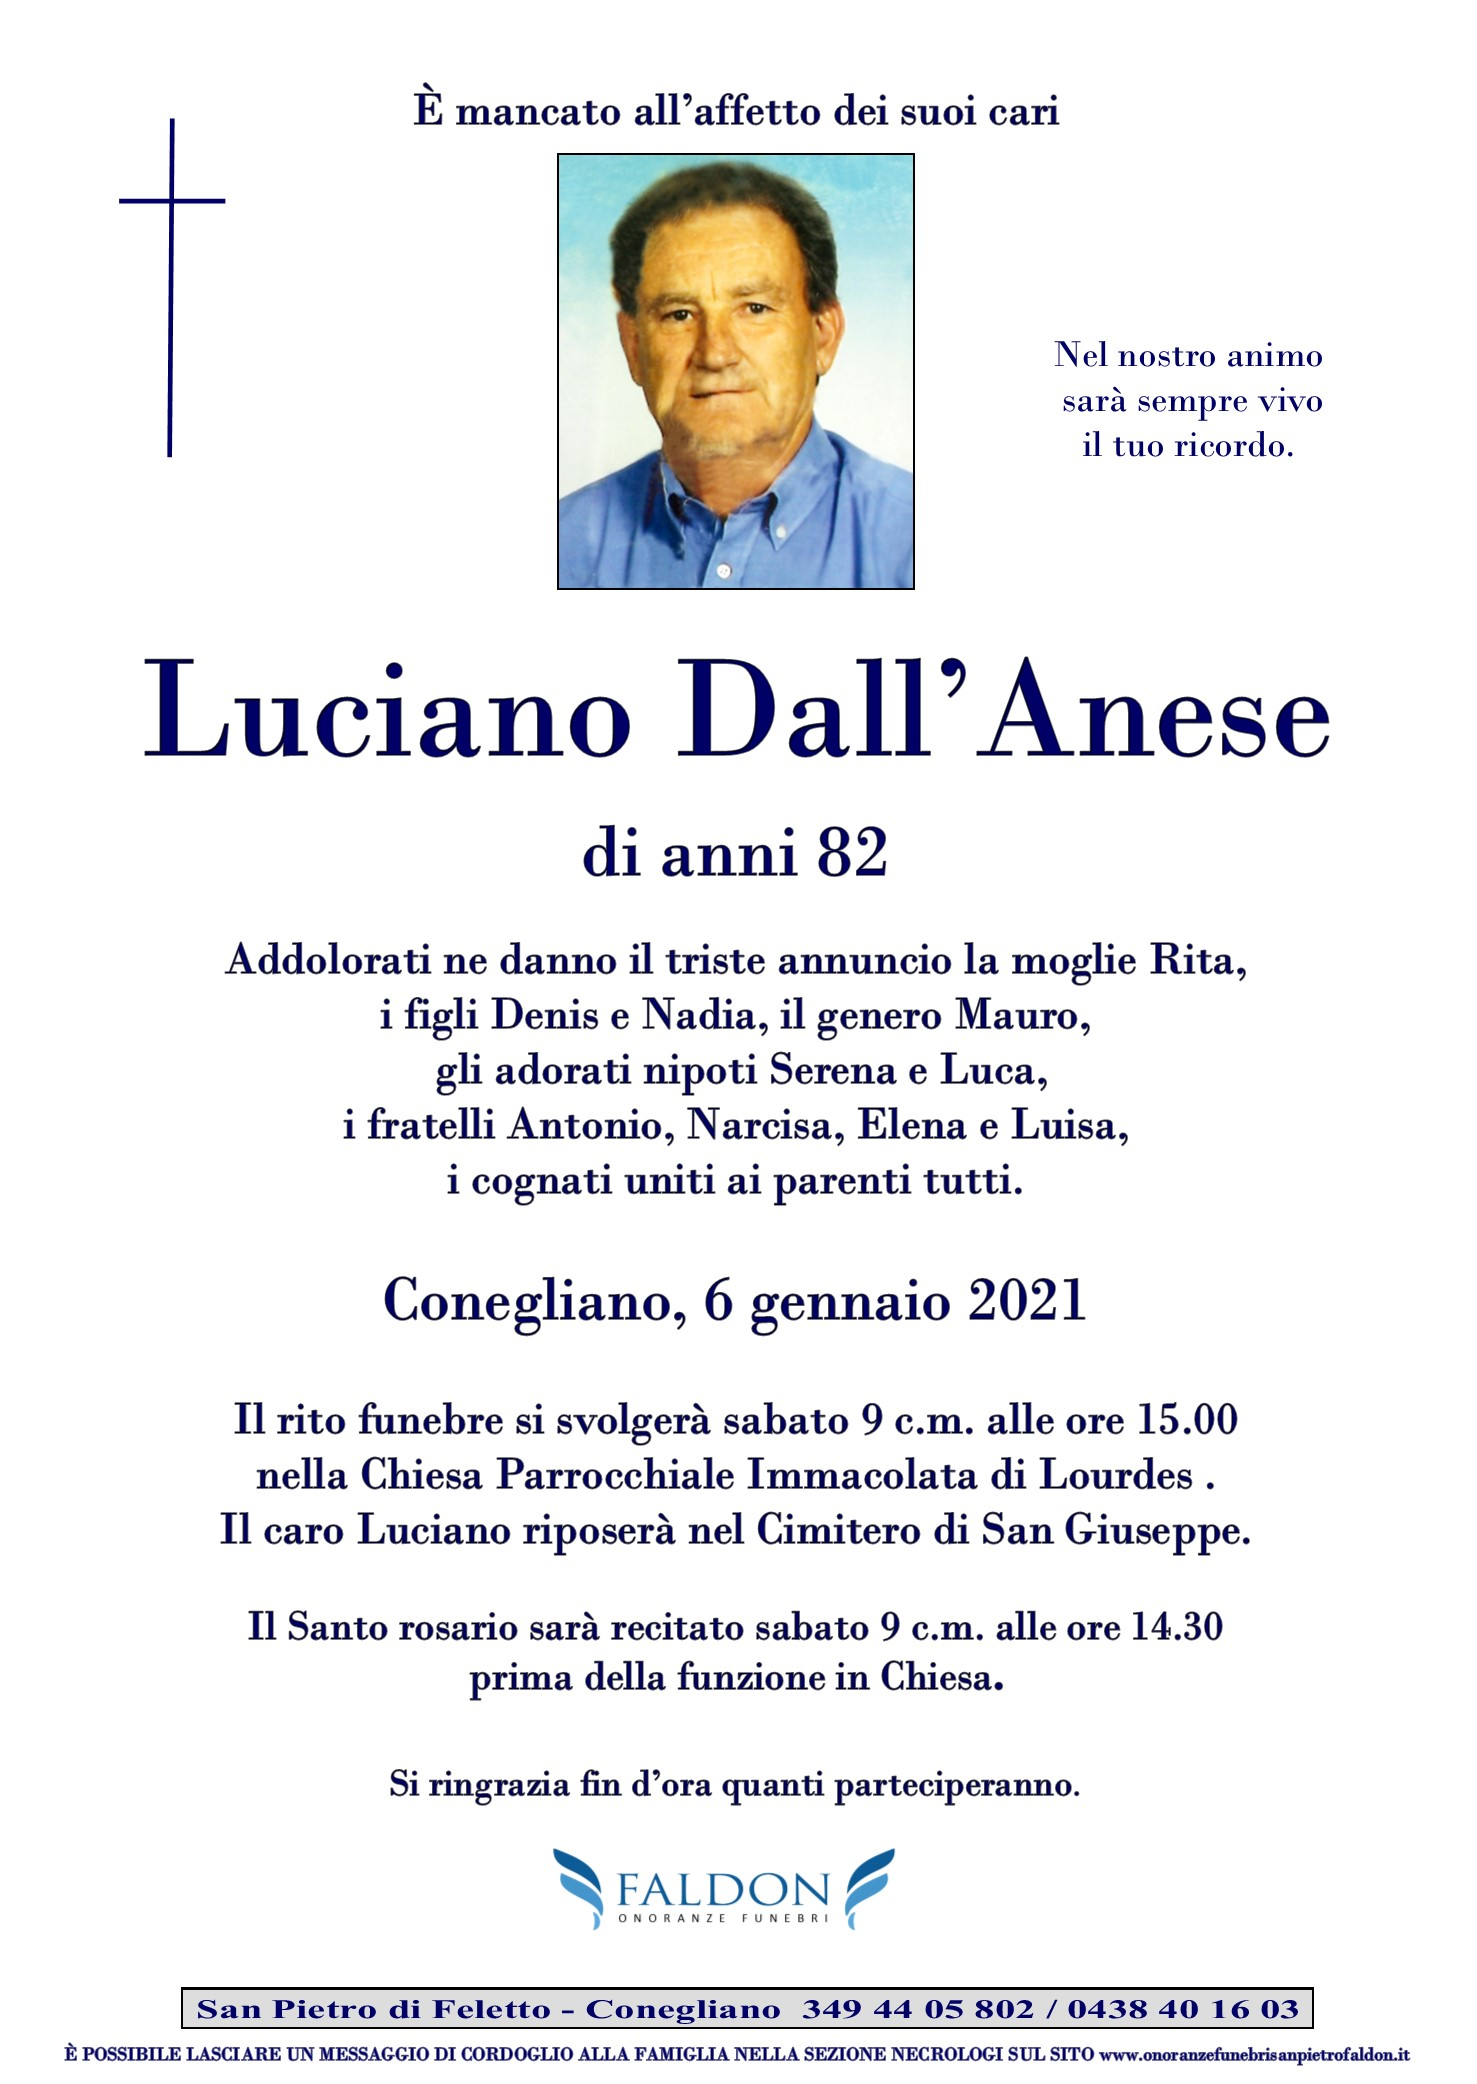 Luciano Dall'Anese